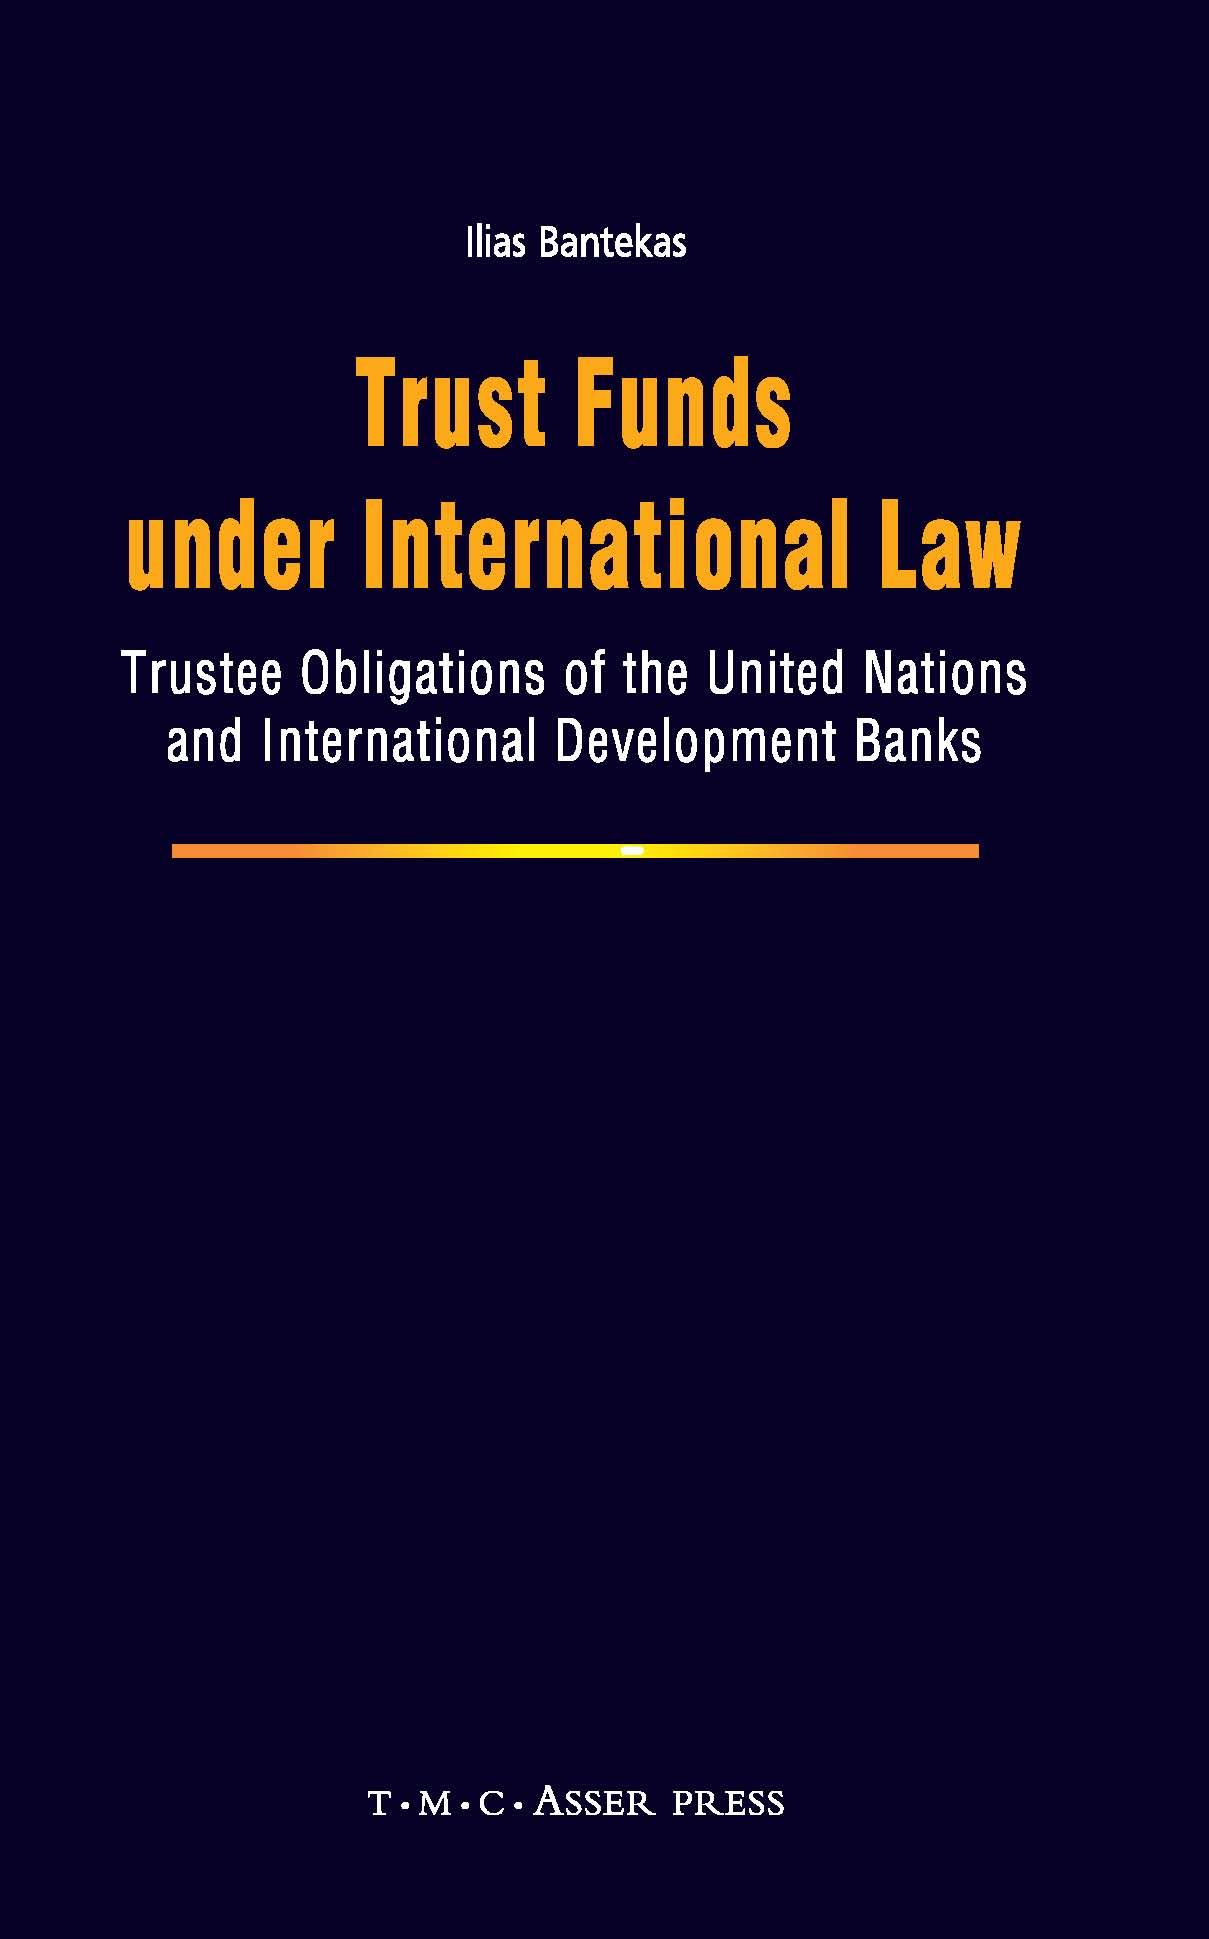 Trust Funds under International Law - Trustee obligations of the United Nations and International Development Banks